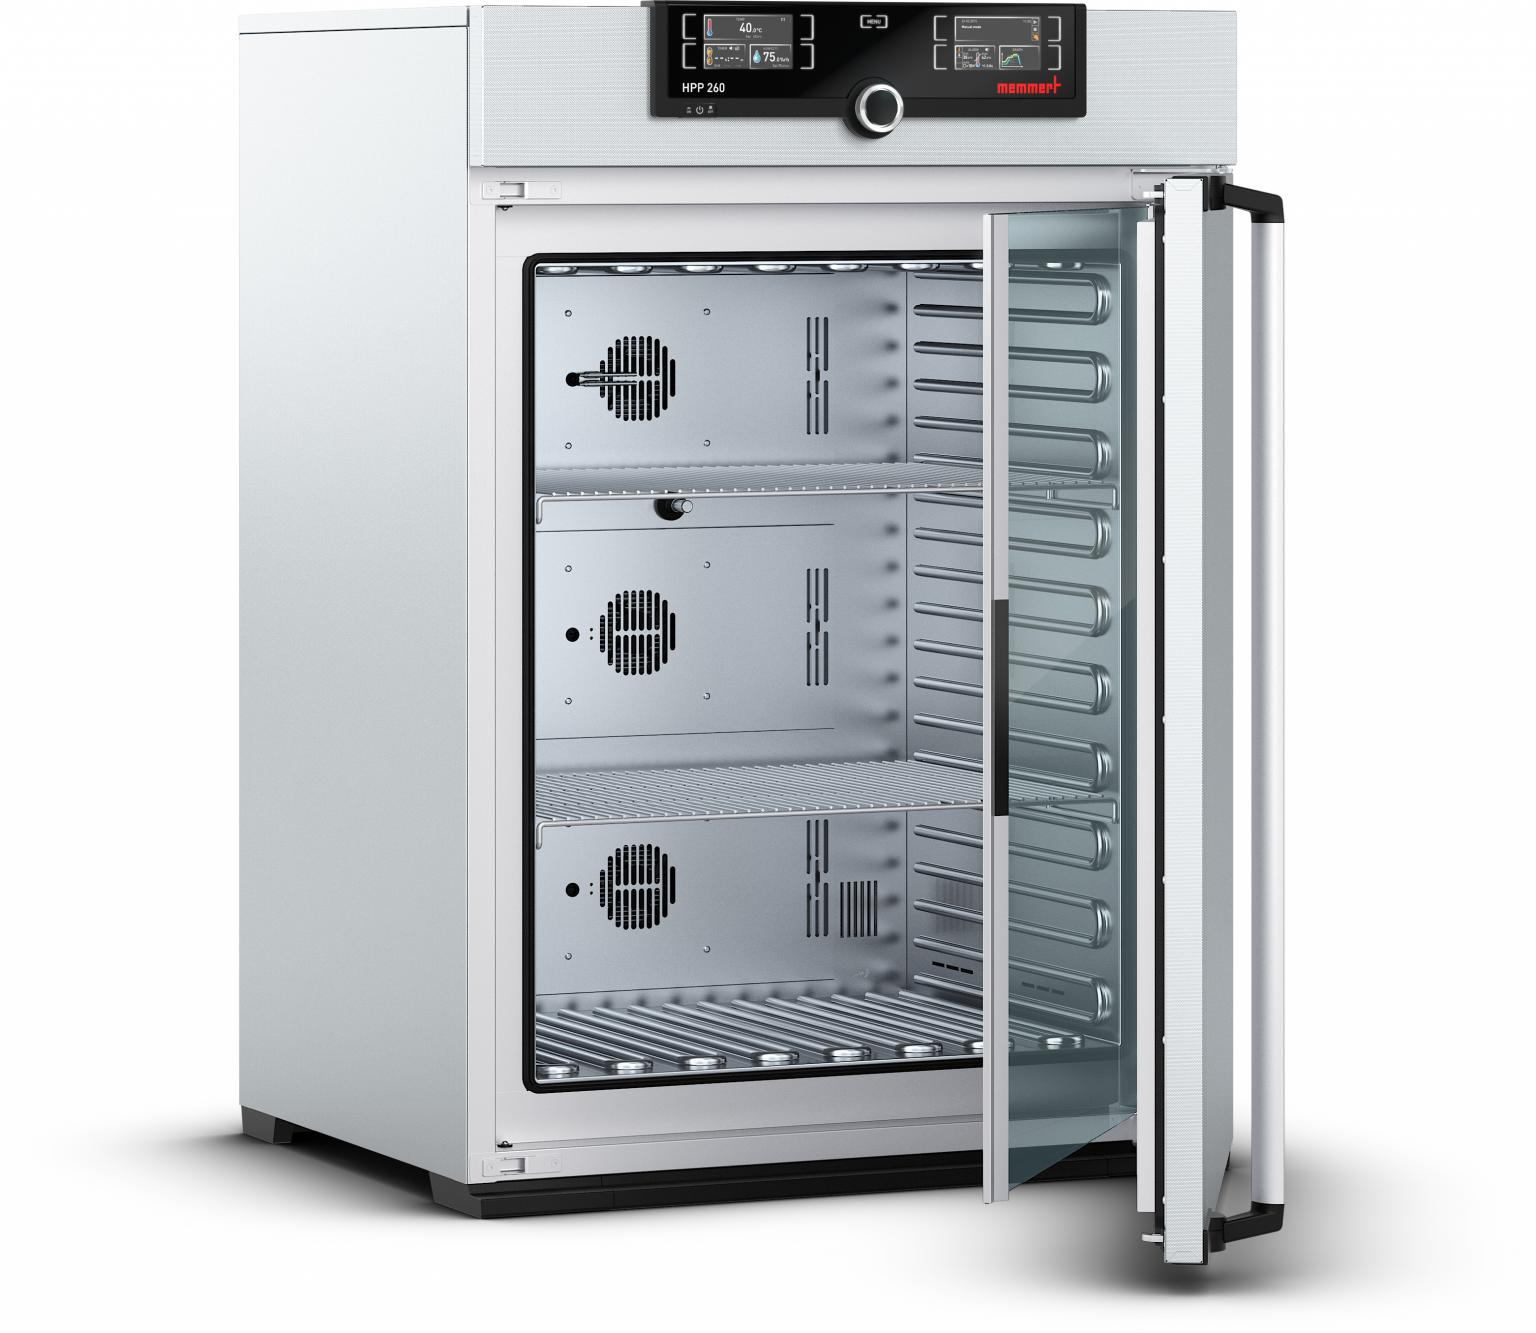 Memmert sought to improve the functionality and design of the handle and locking mechanism on its latest generation of laboratory oven